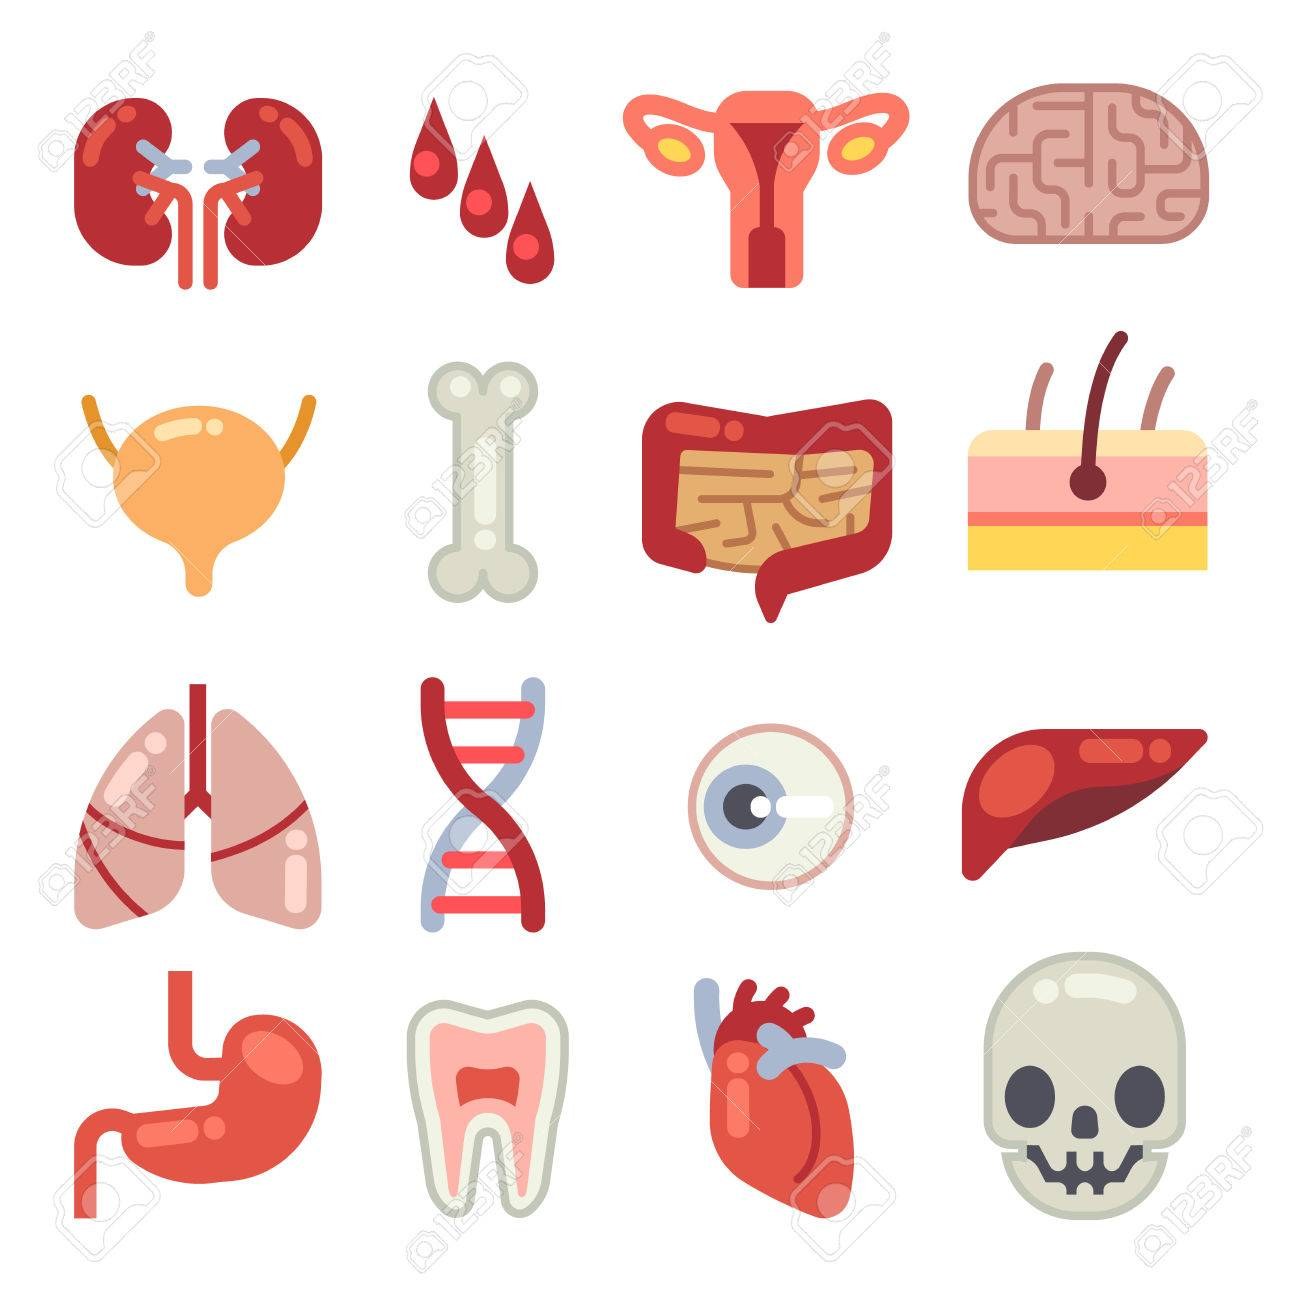 Human internal organs flat vector icons set of vital organs human internal organs flat vector icons set of vital organs illustration of brain ccuart Image collections